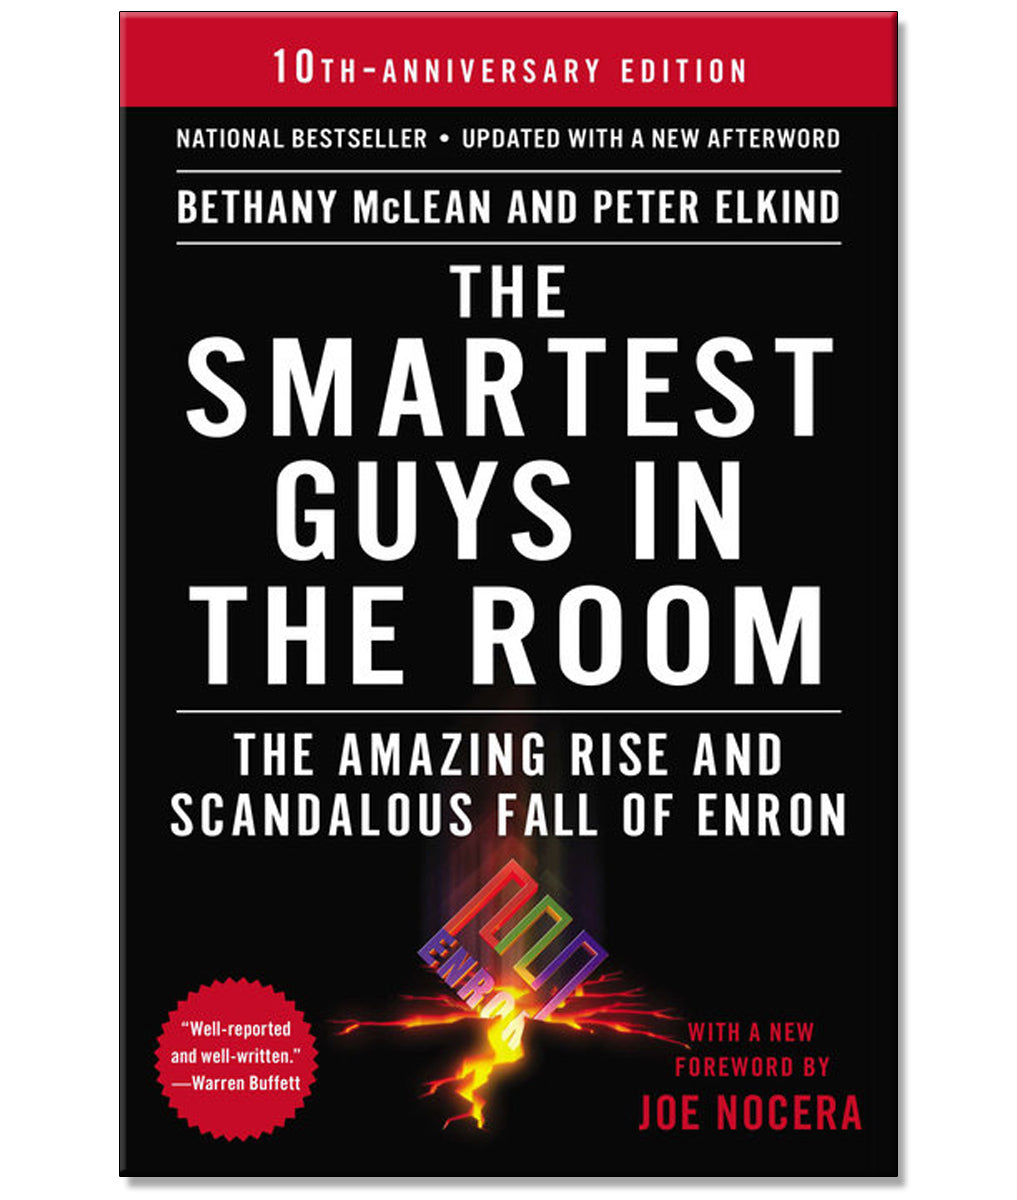 The Smartest Guys in the Room Paperback Book